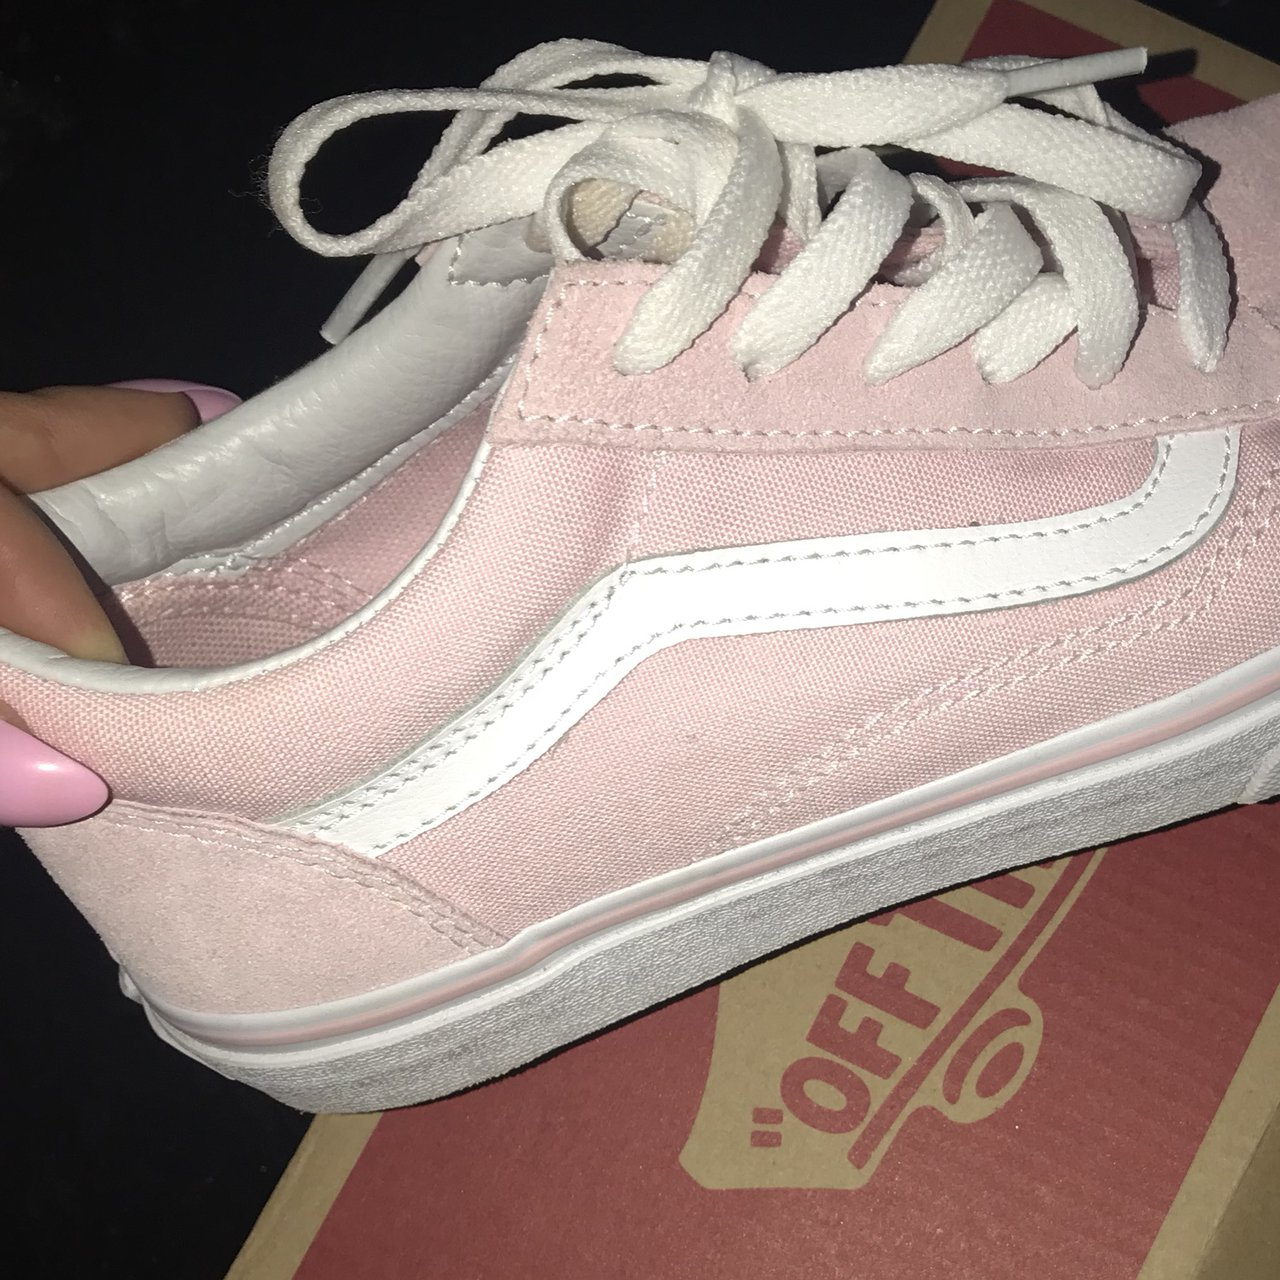 Brand new baby pink vans worn once for few hours size 4... - Depop aa1f42b5a